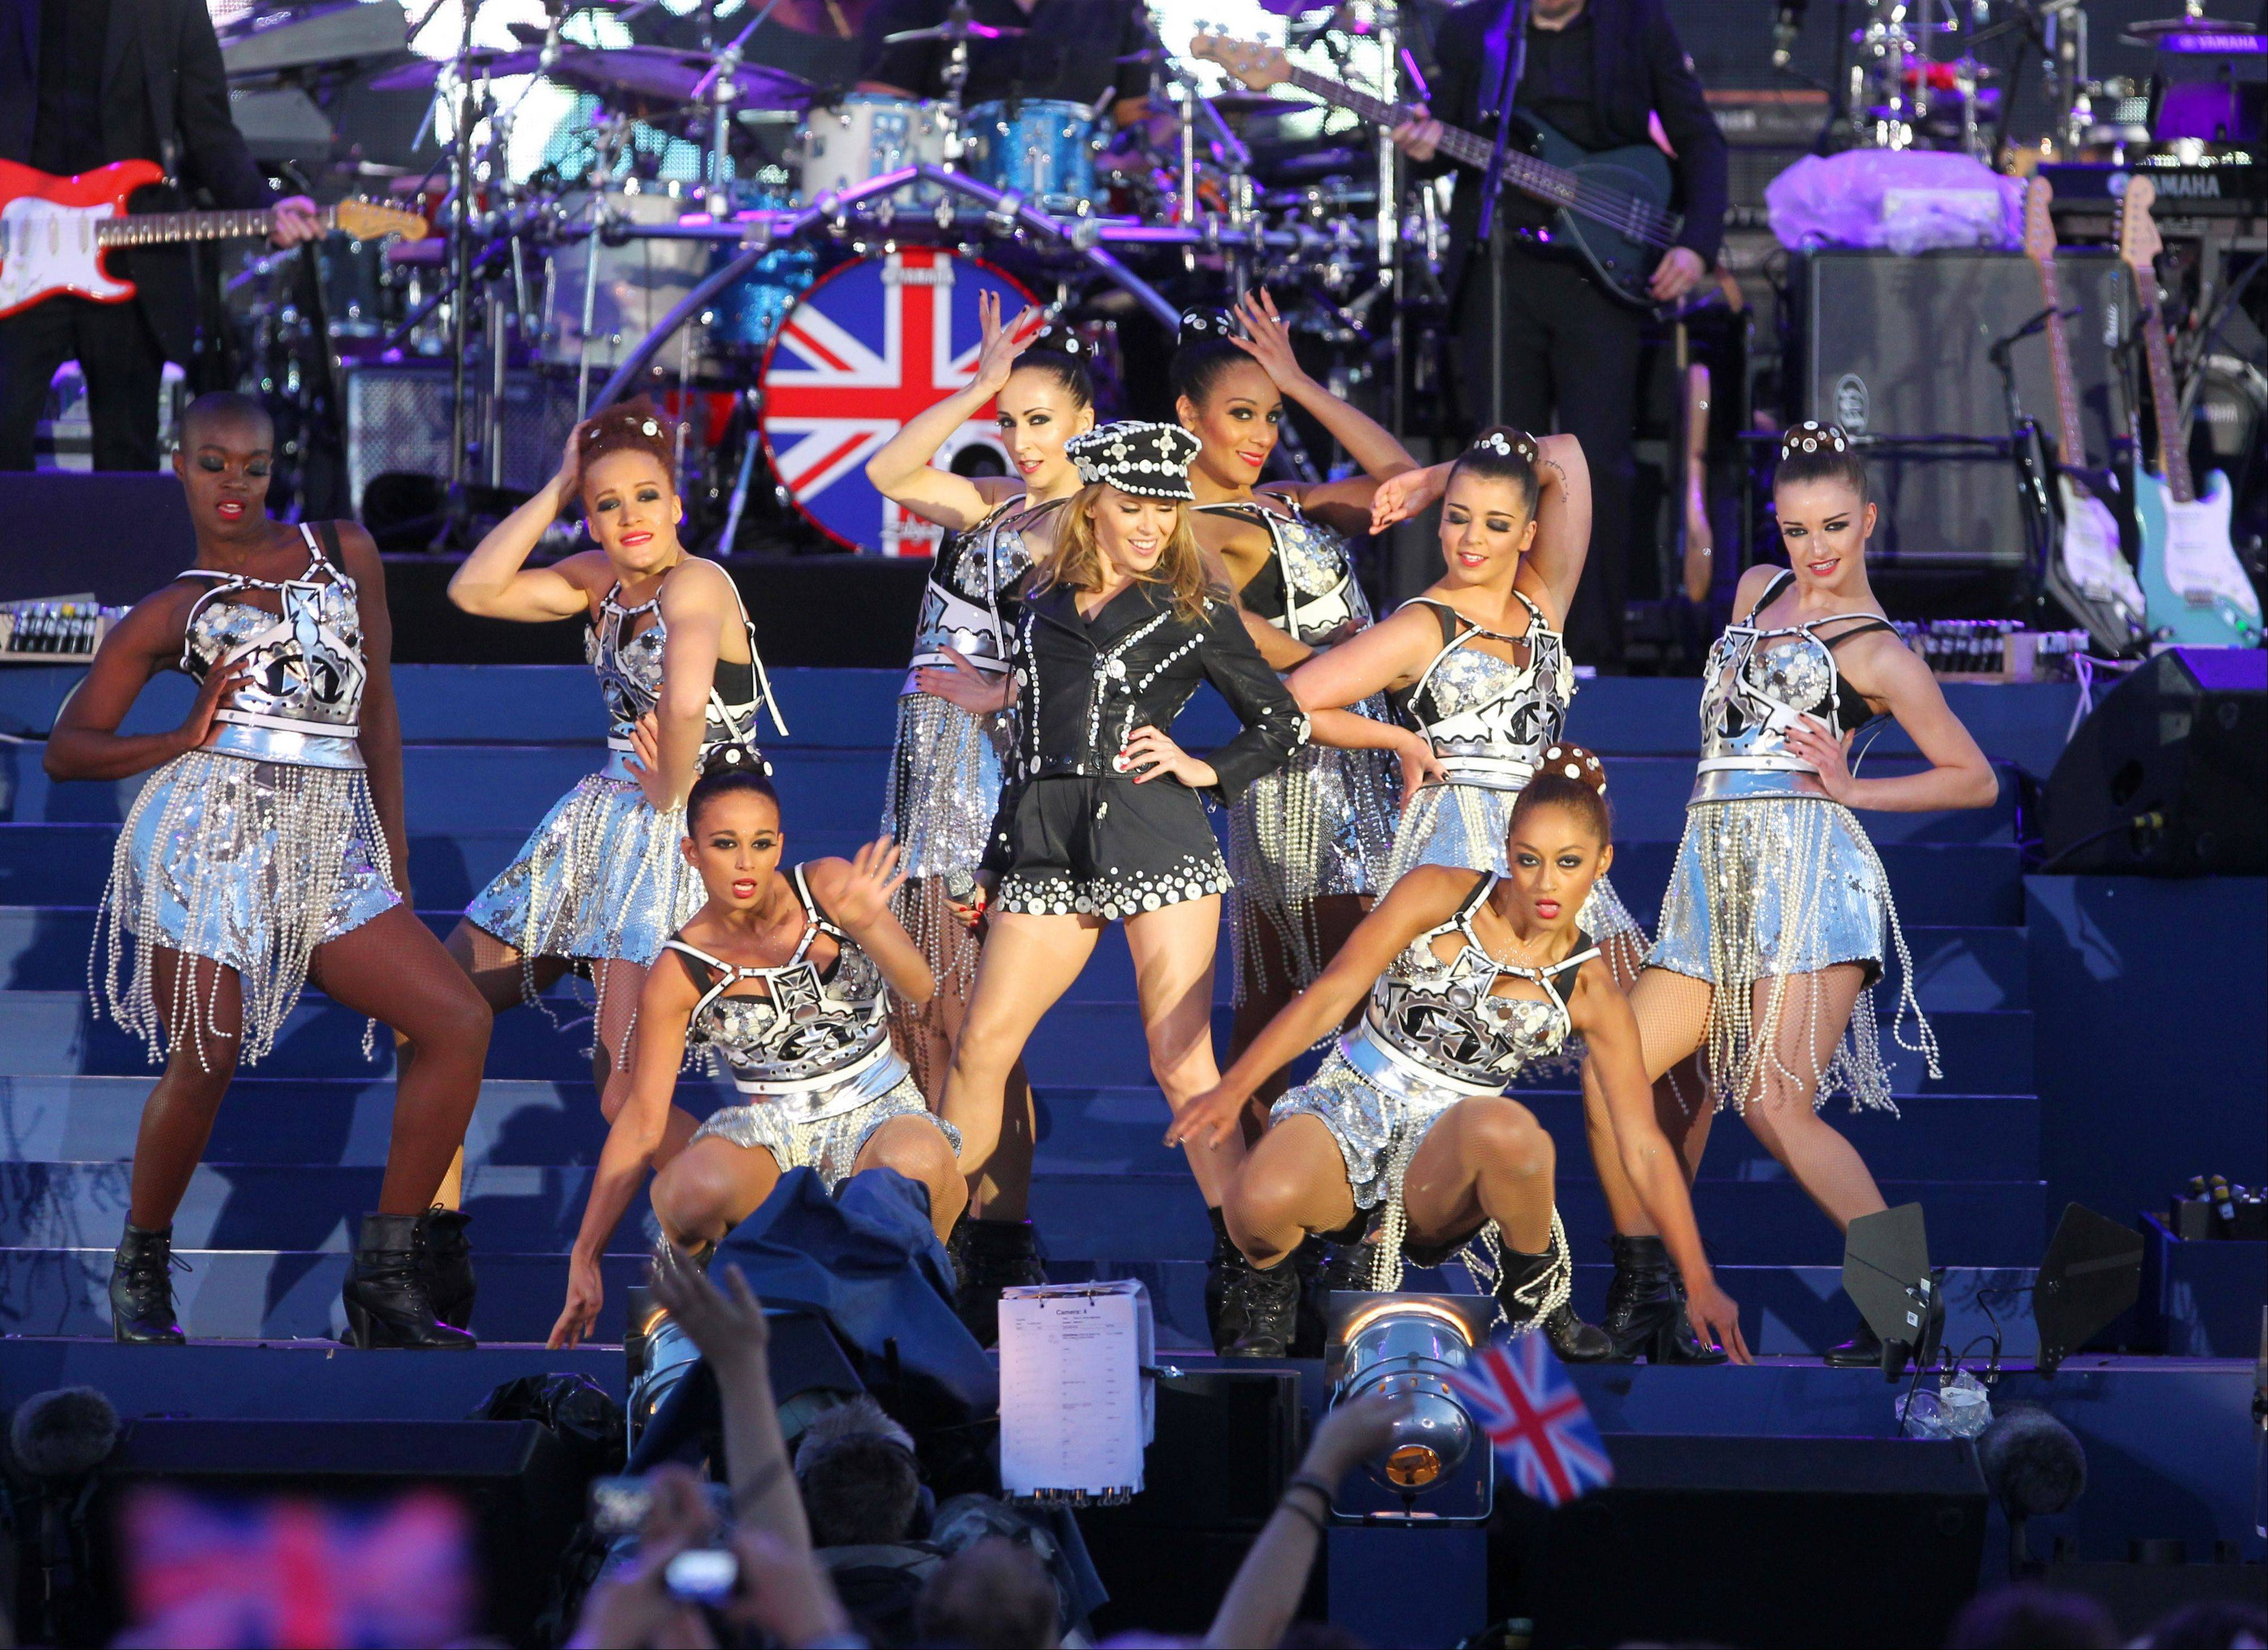 Kylie Minogue, centre, performs at the Queen's Jubilee Concert in front of Buckingham Palace, London, Monday, June 4, 2012. The concert is a part of four days of celebrations to mark the 60-year reign of Britain's Queen Elizabeth II.